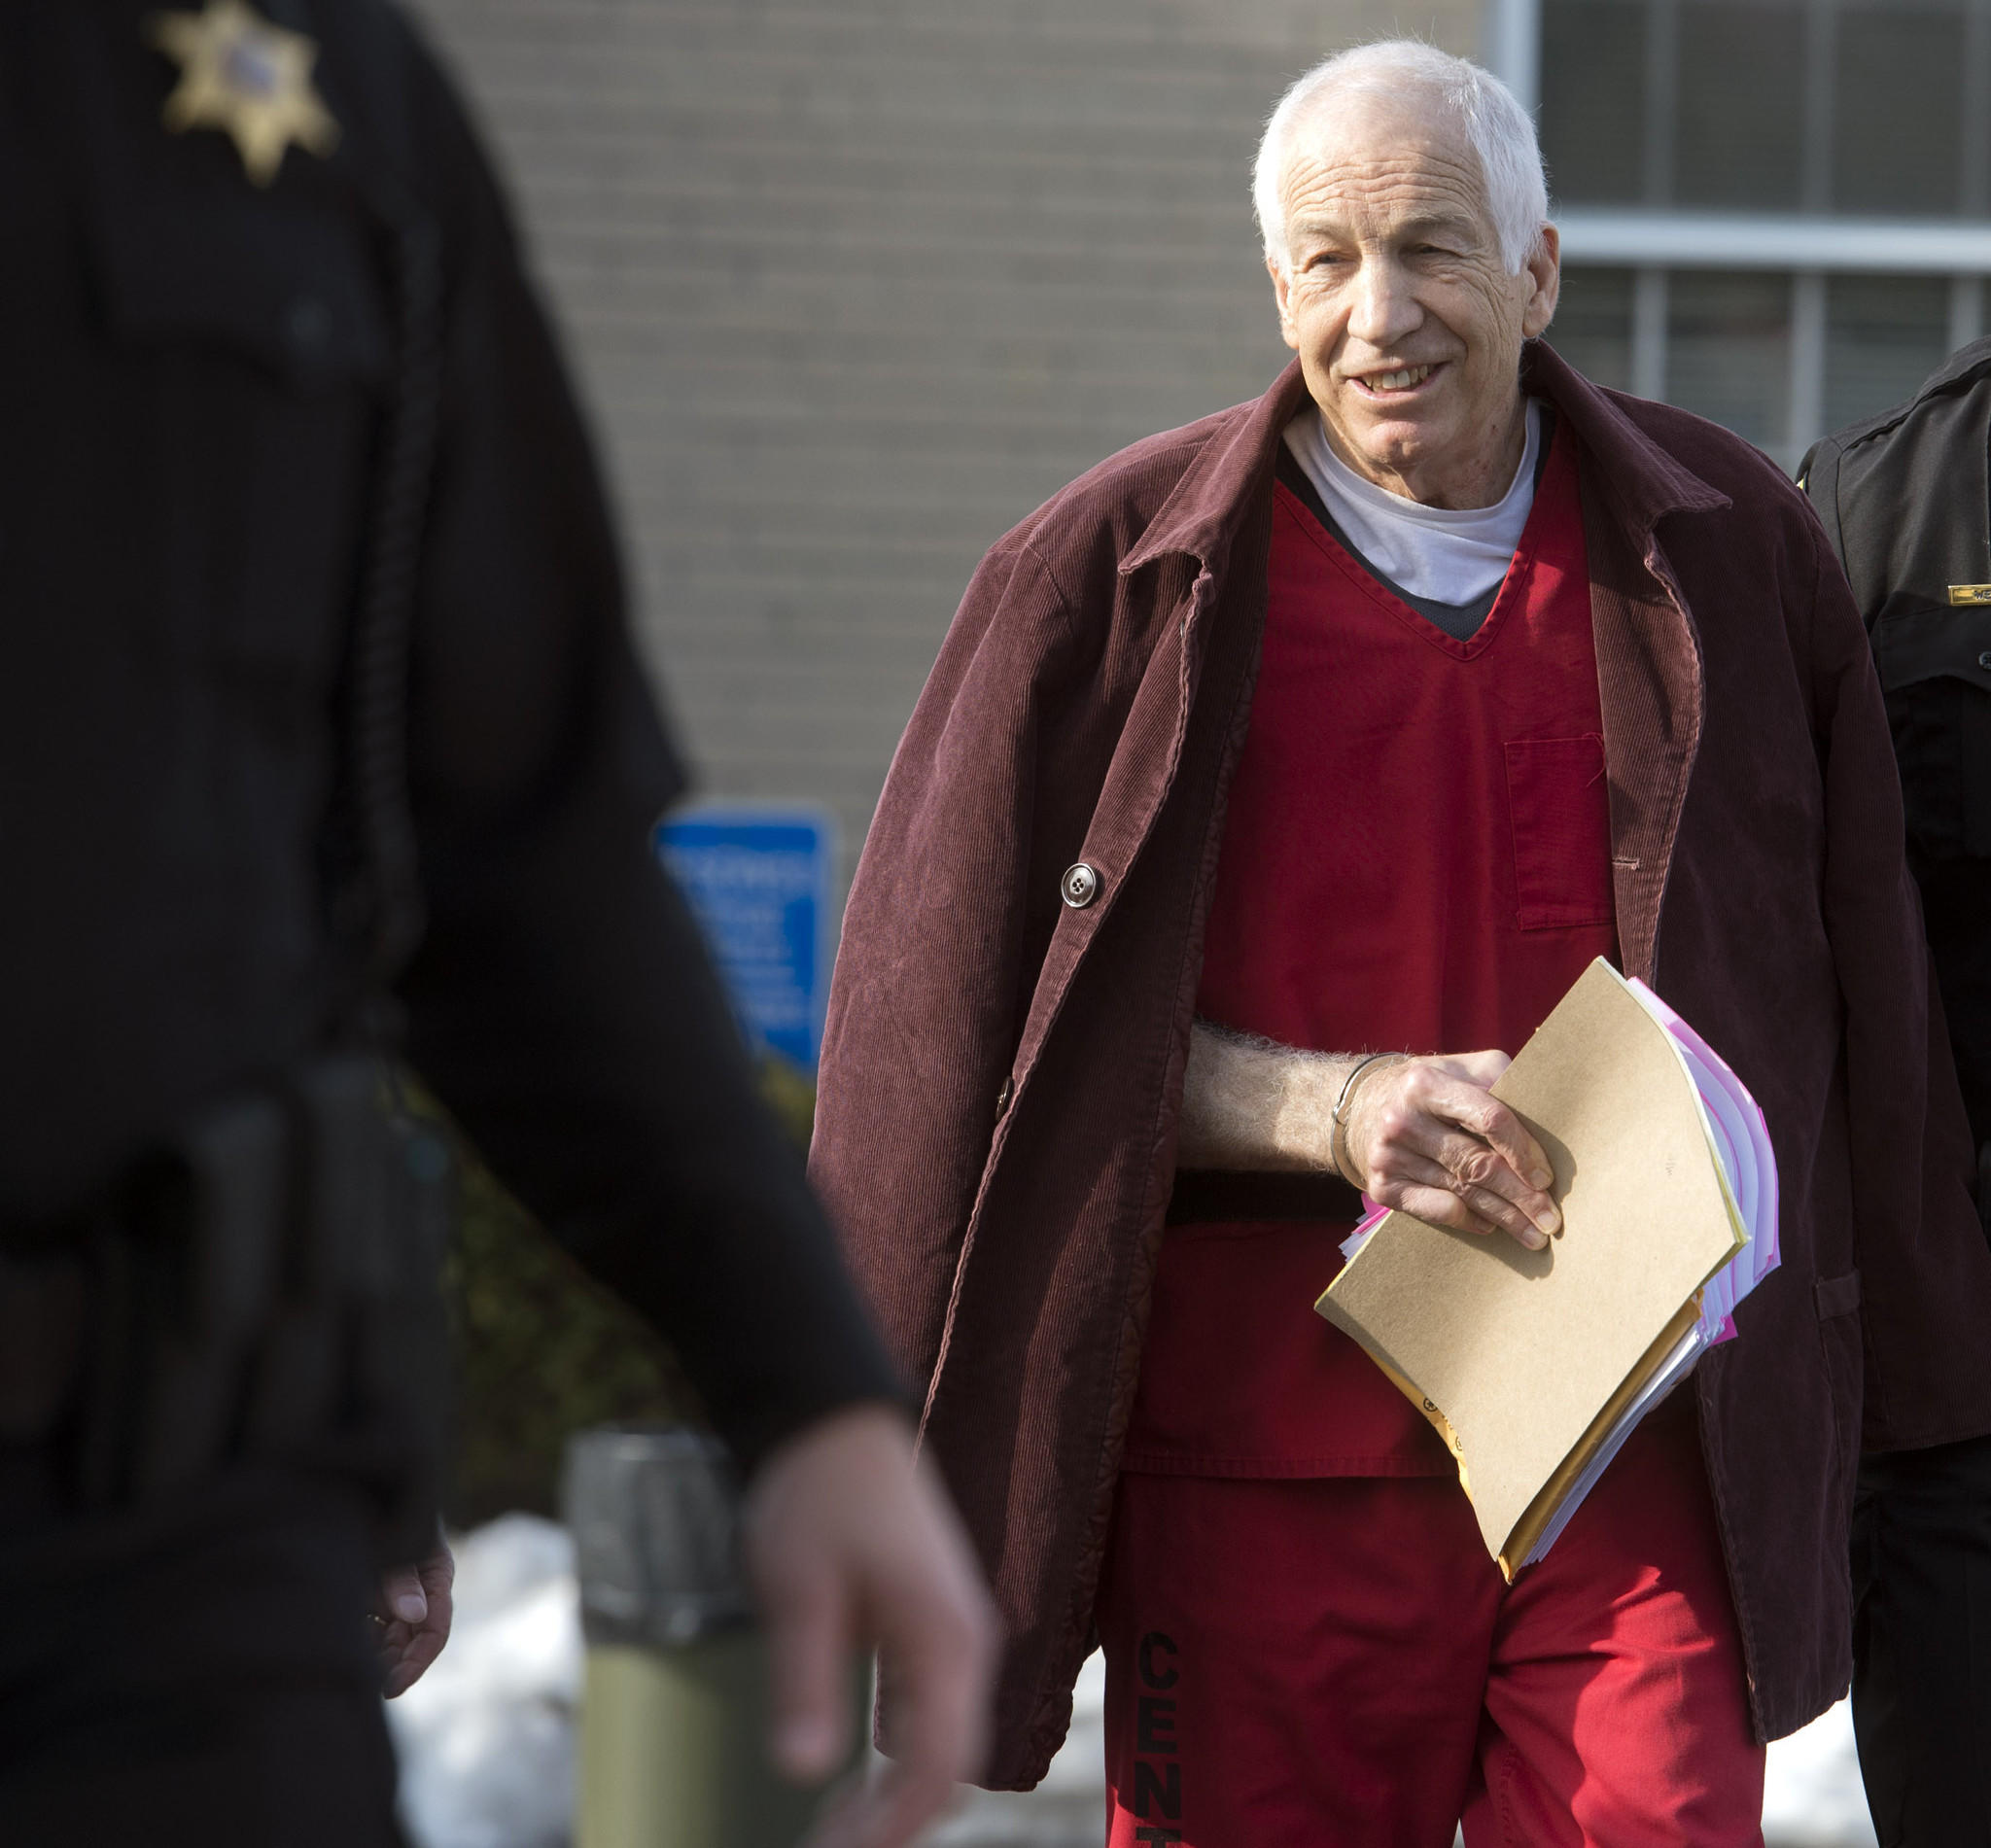 In this file photo, Jerry Sandusky leaves after a hearing at the Centre County Courthouse in Bellefonte on January 10, 2013.